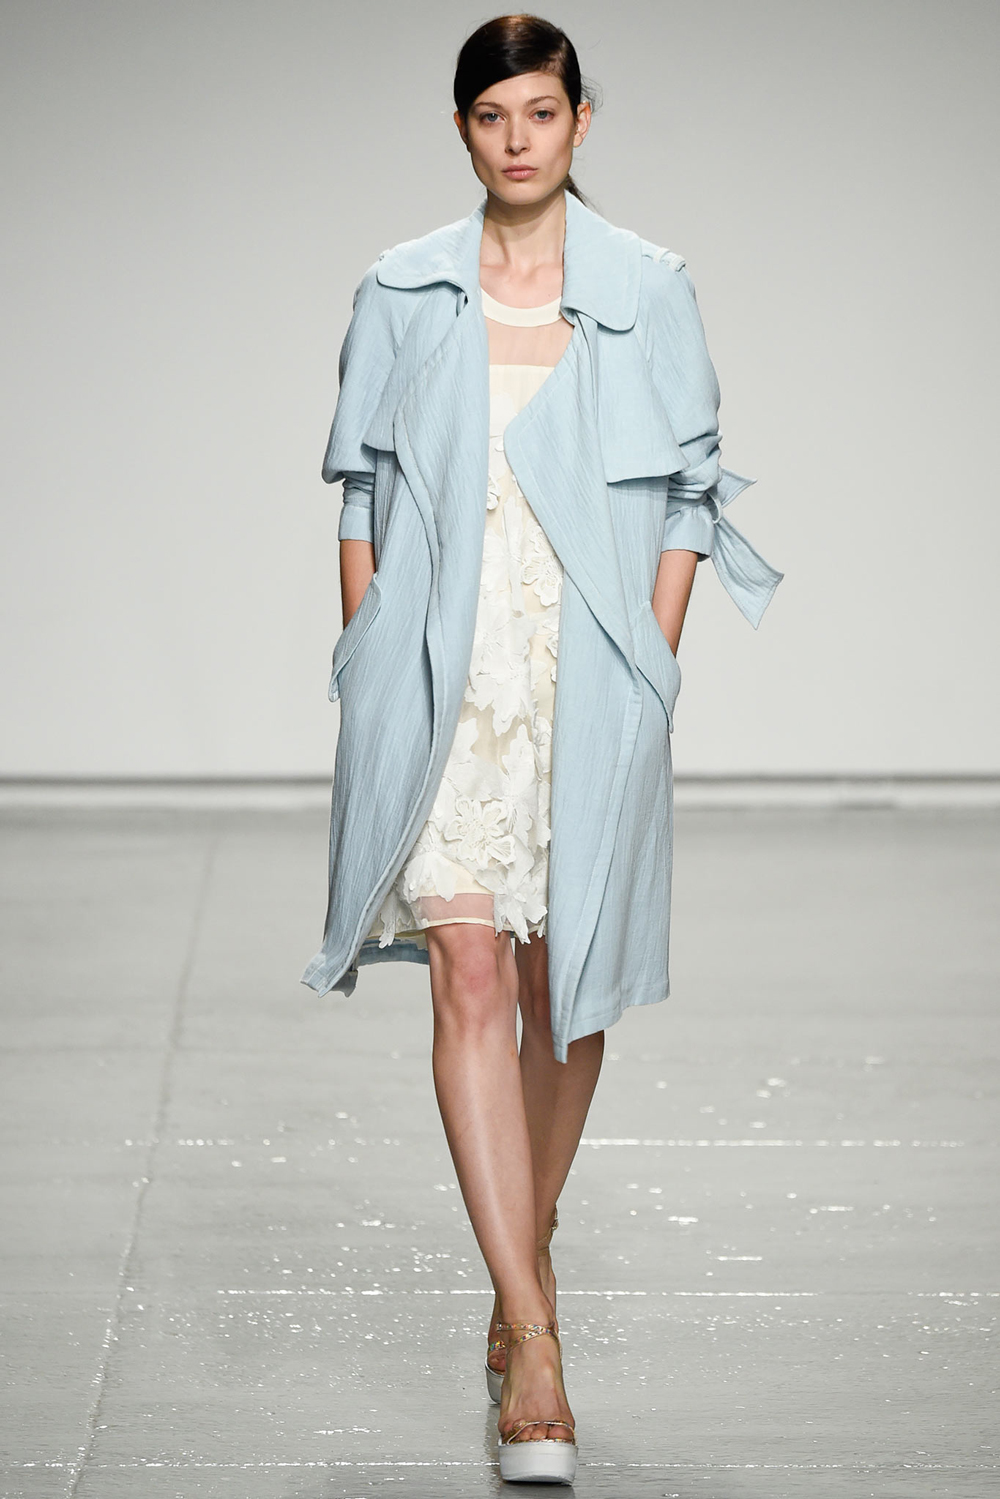 Pantone Colour Report Spring 2015 trends / aquamarine / how to wear aquamarine / outfit ideas / fashion collections S/S 2015 / Rebecca Taylor Spring 2015 / via fashioned by love british fashion blog